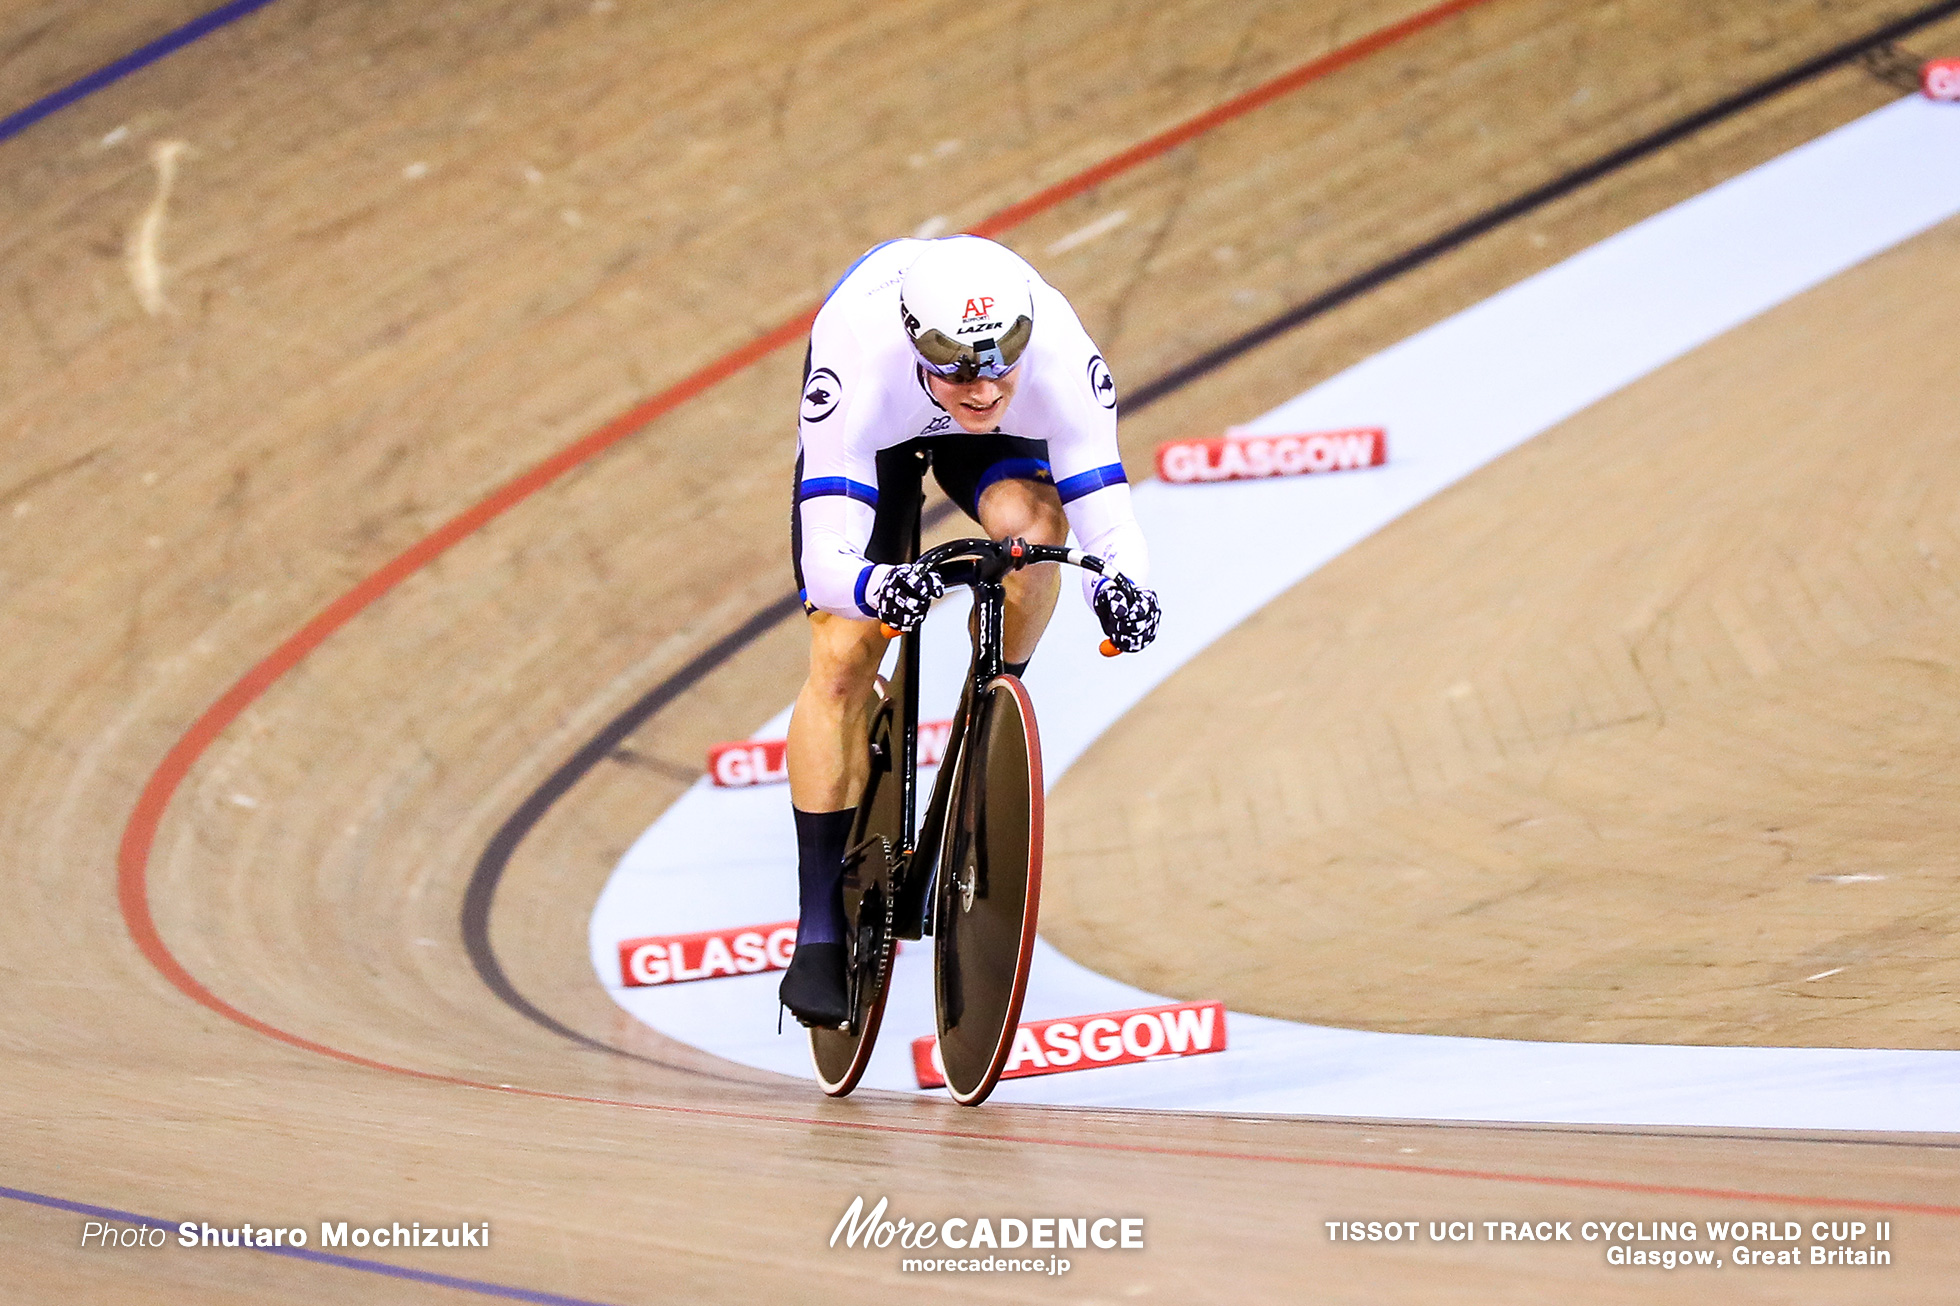 Qualifying / Men's Sprint / TISSOT UCI TRACK CYCLING WORLD CUP II, Glasgow, Great Britain